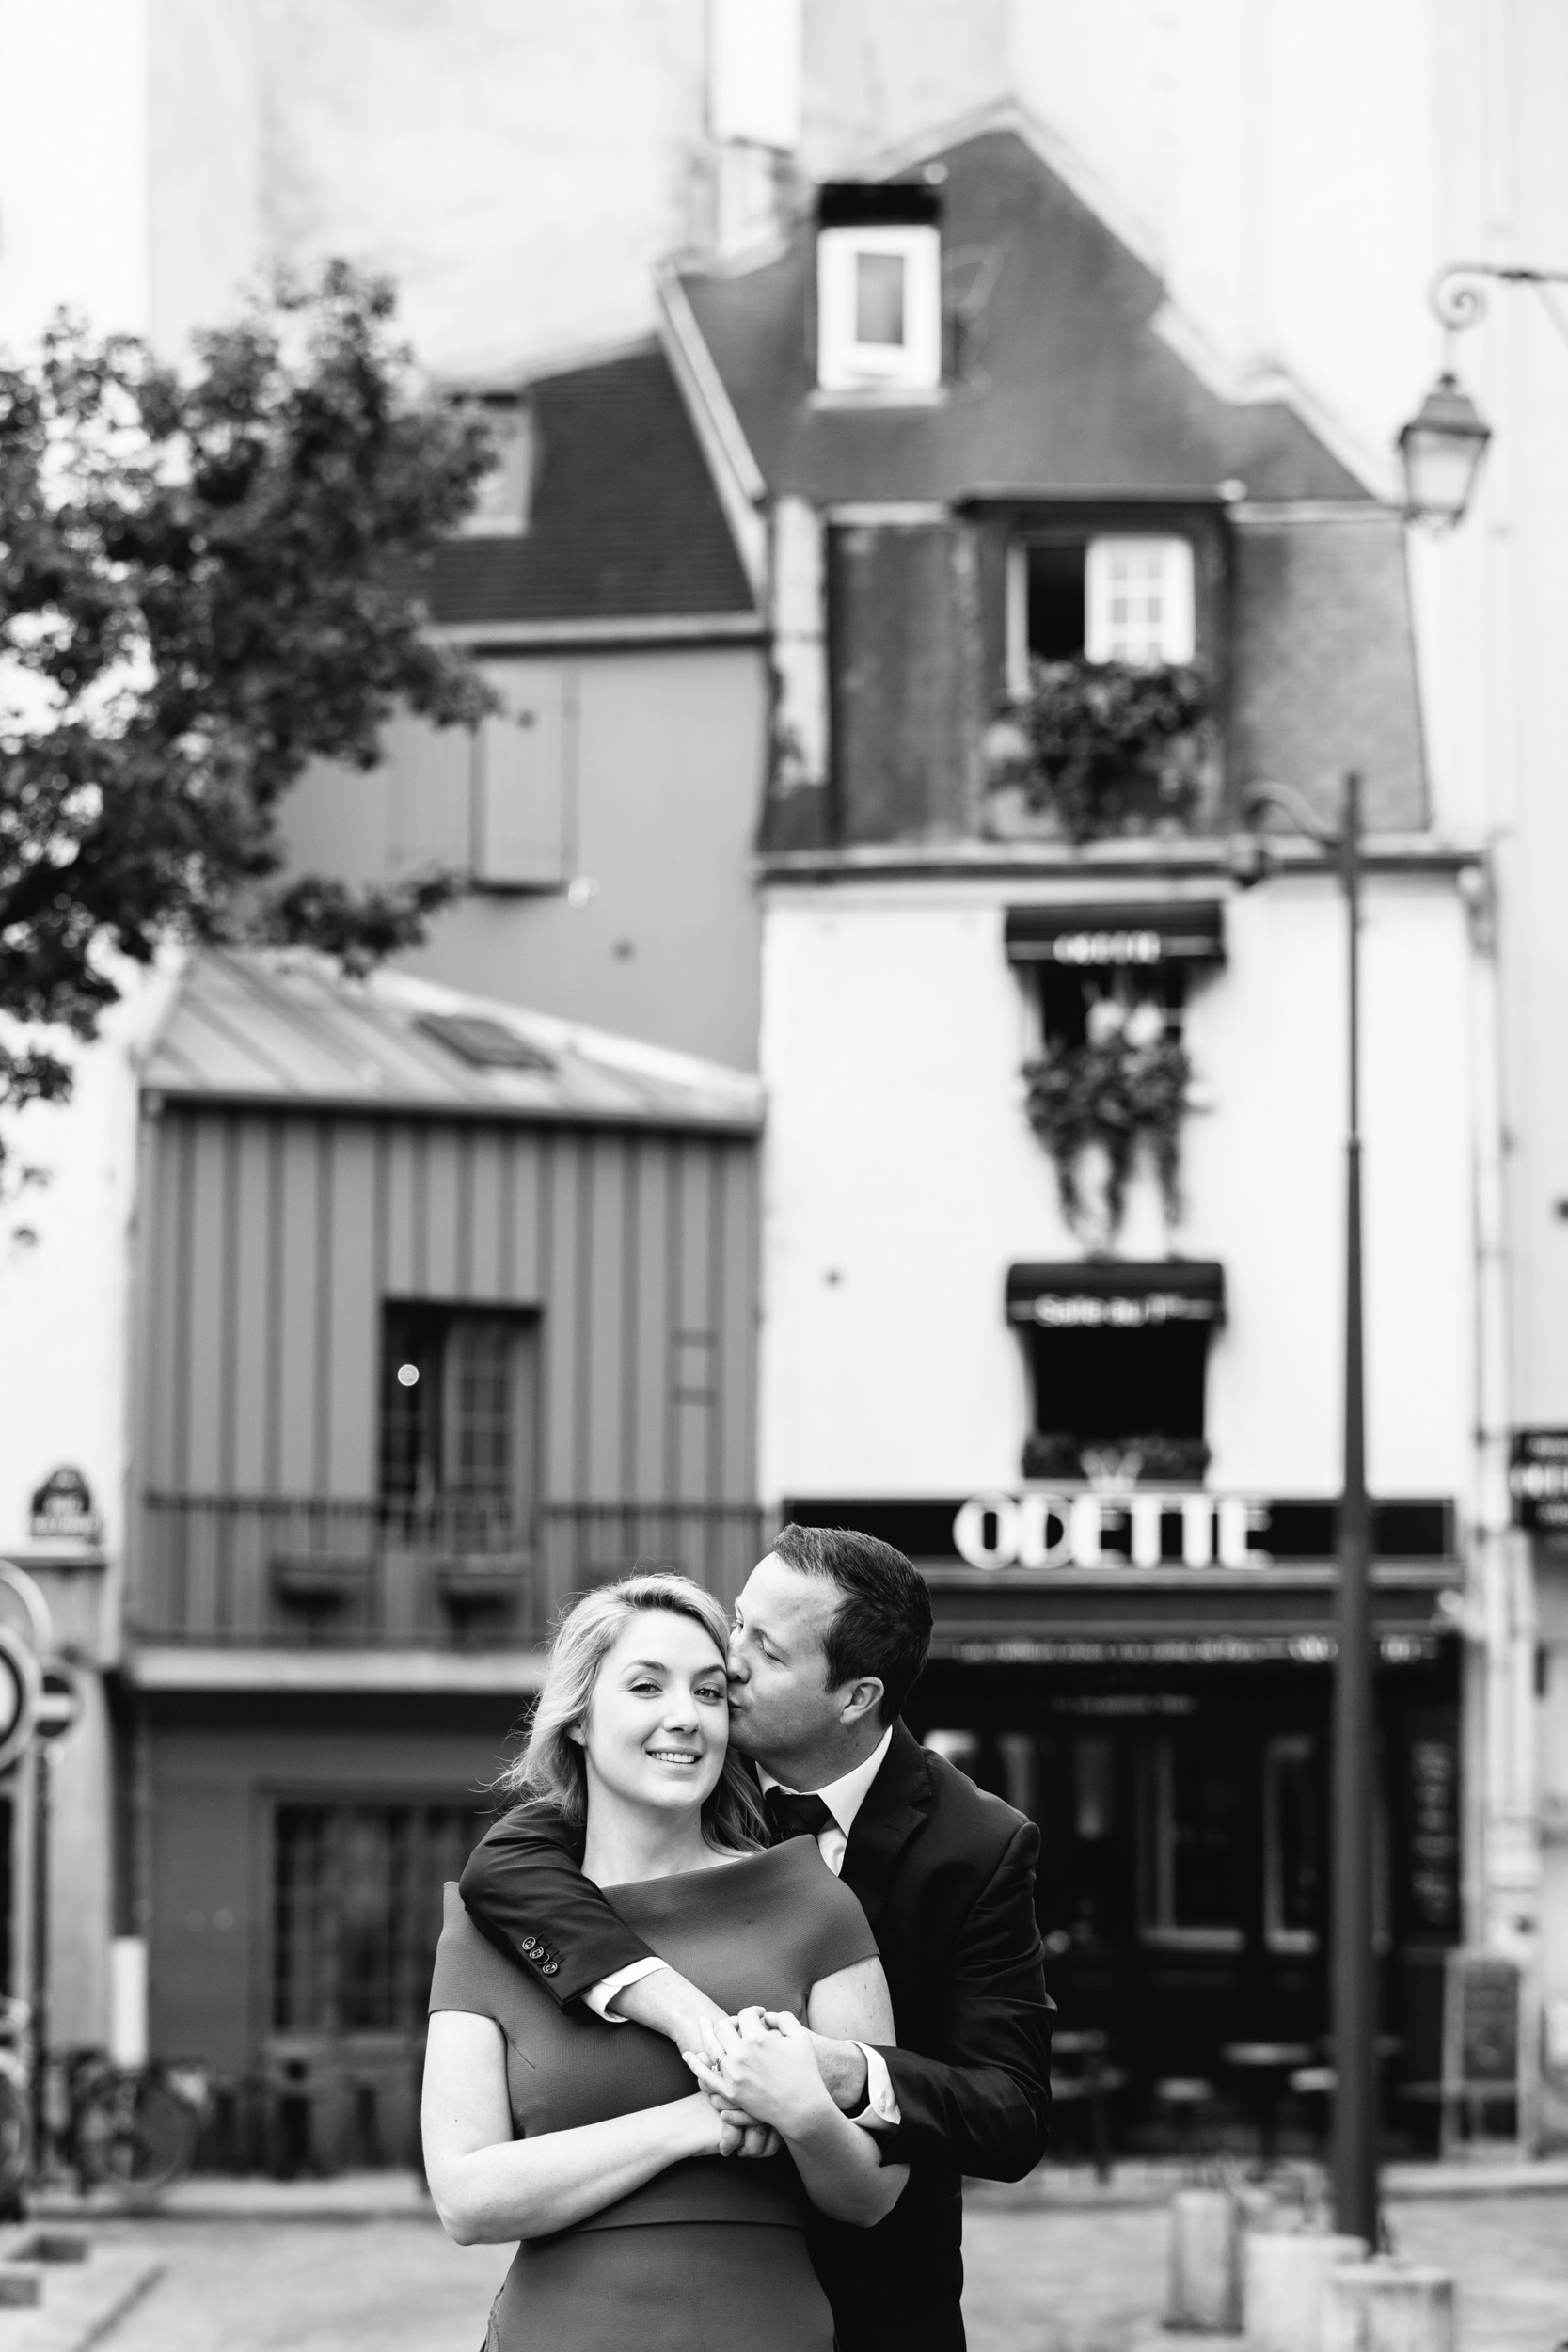 Romantic black and white portrait of a couple hugging in front of cafe Odette in Saint Germain captured by Paris Photographer Federico Guendel www.iheartparis.fr